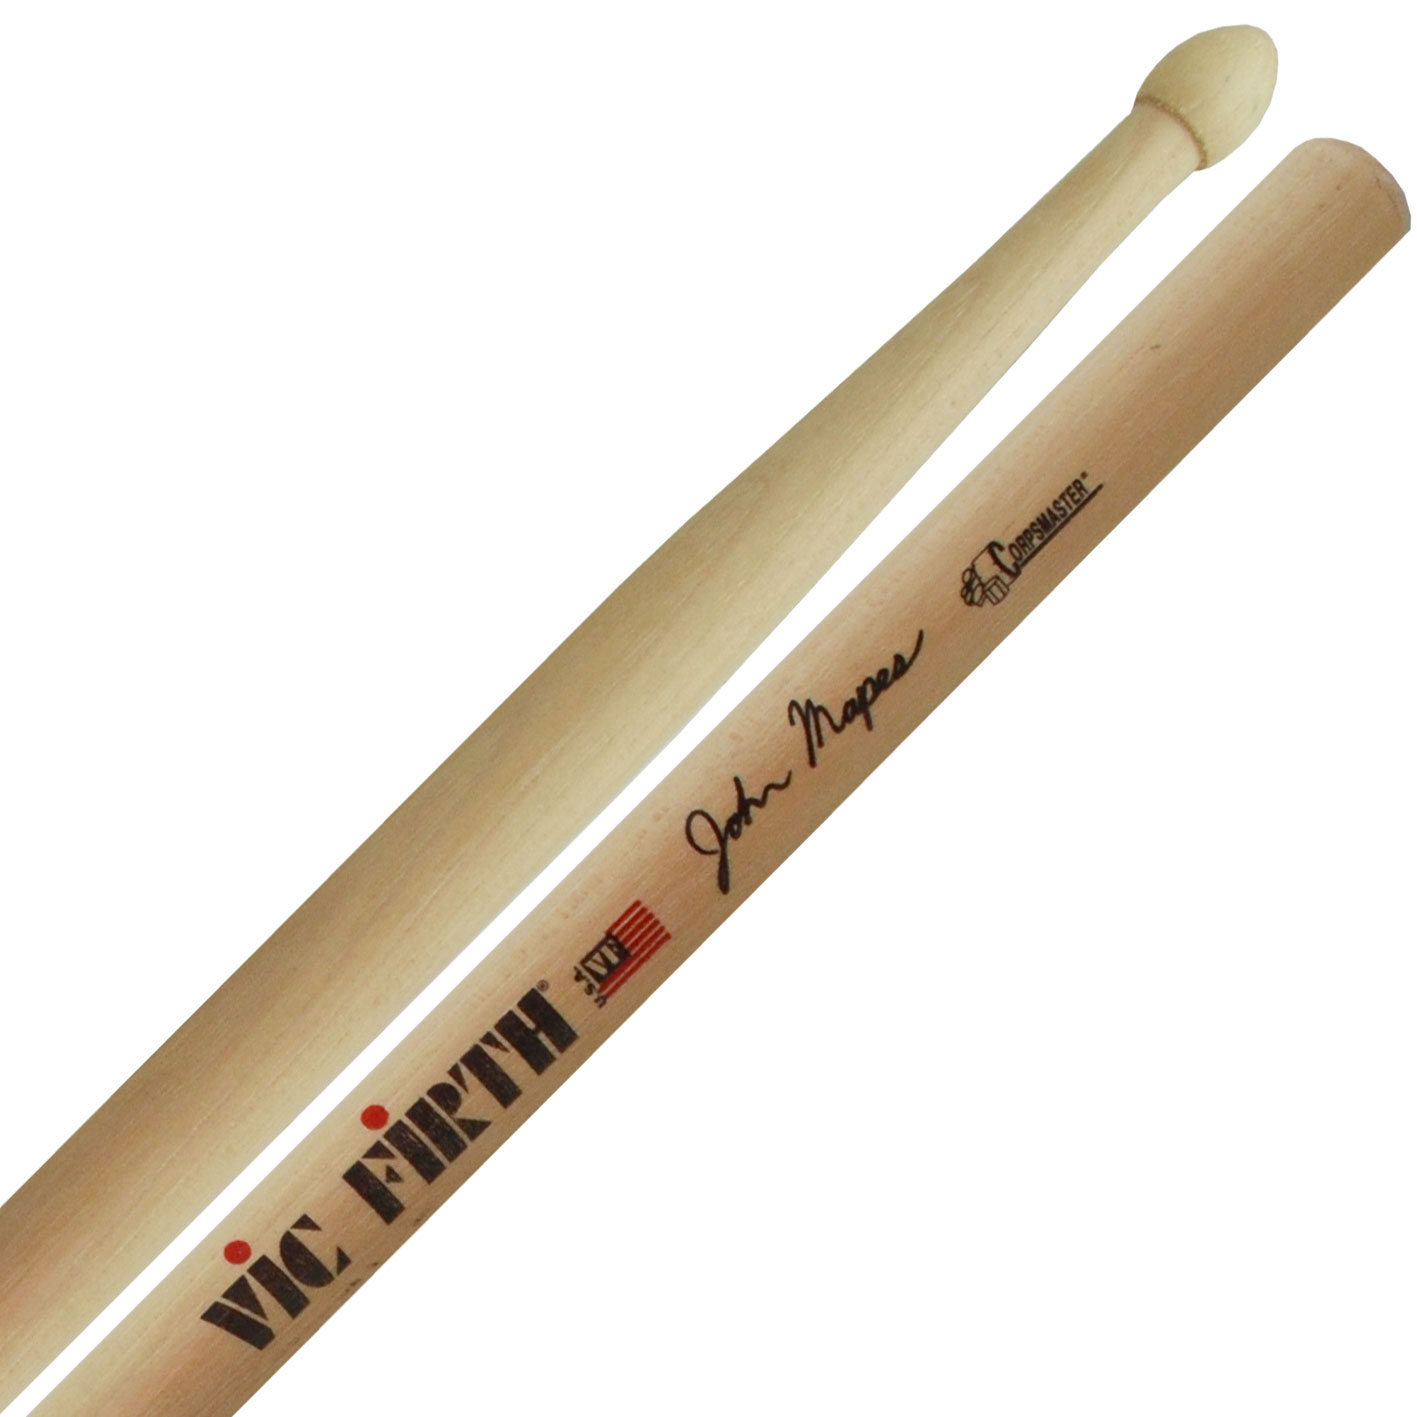 Vic Firth SMAP John Mapes Corpsmaster Marching Snare Drum Sticks